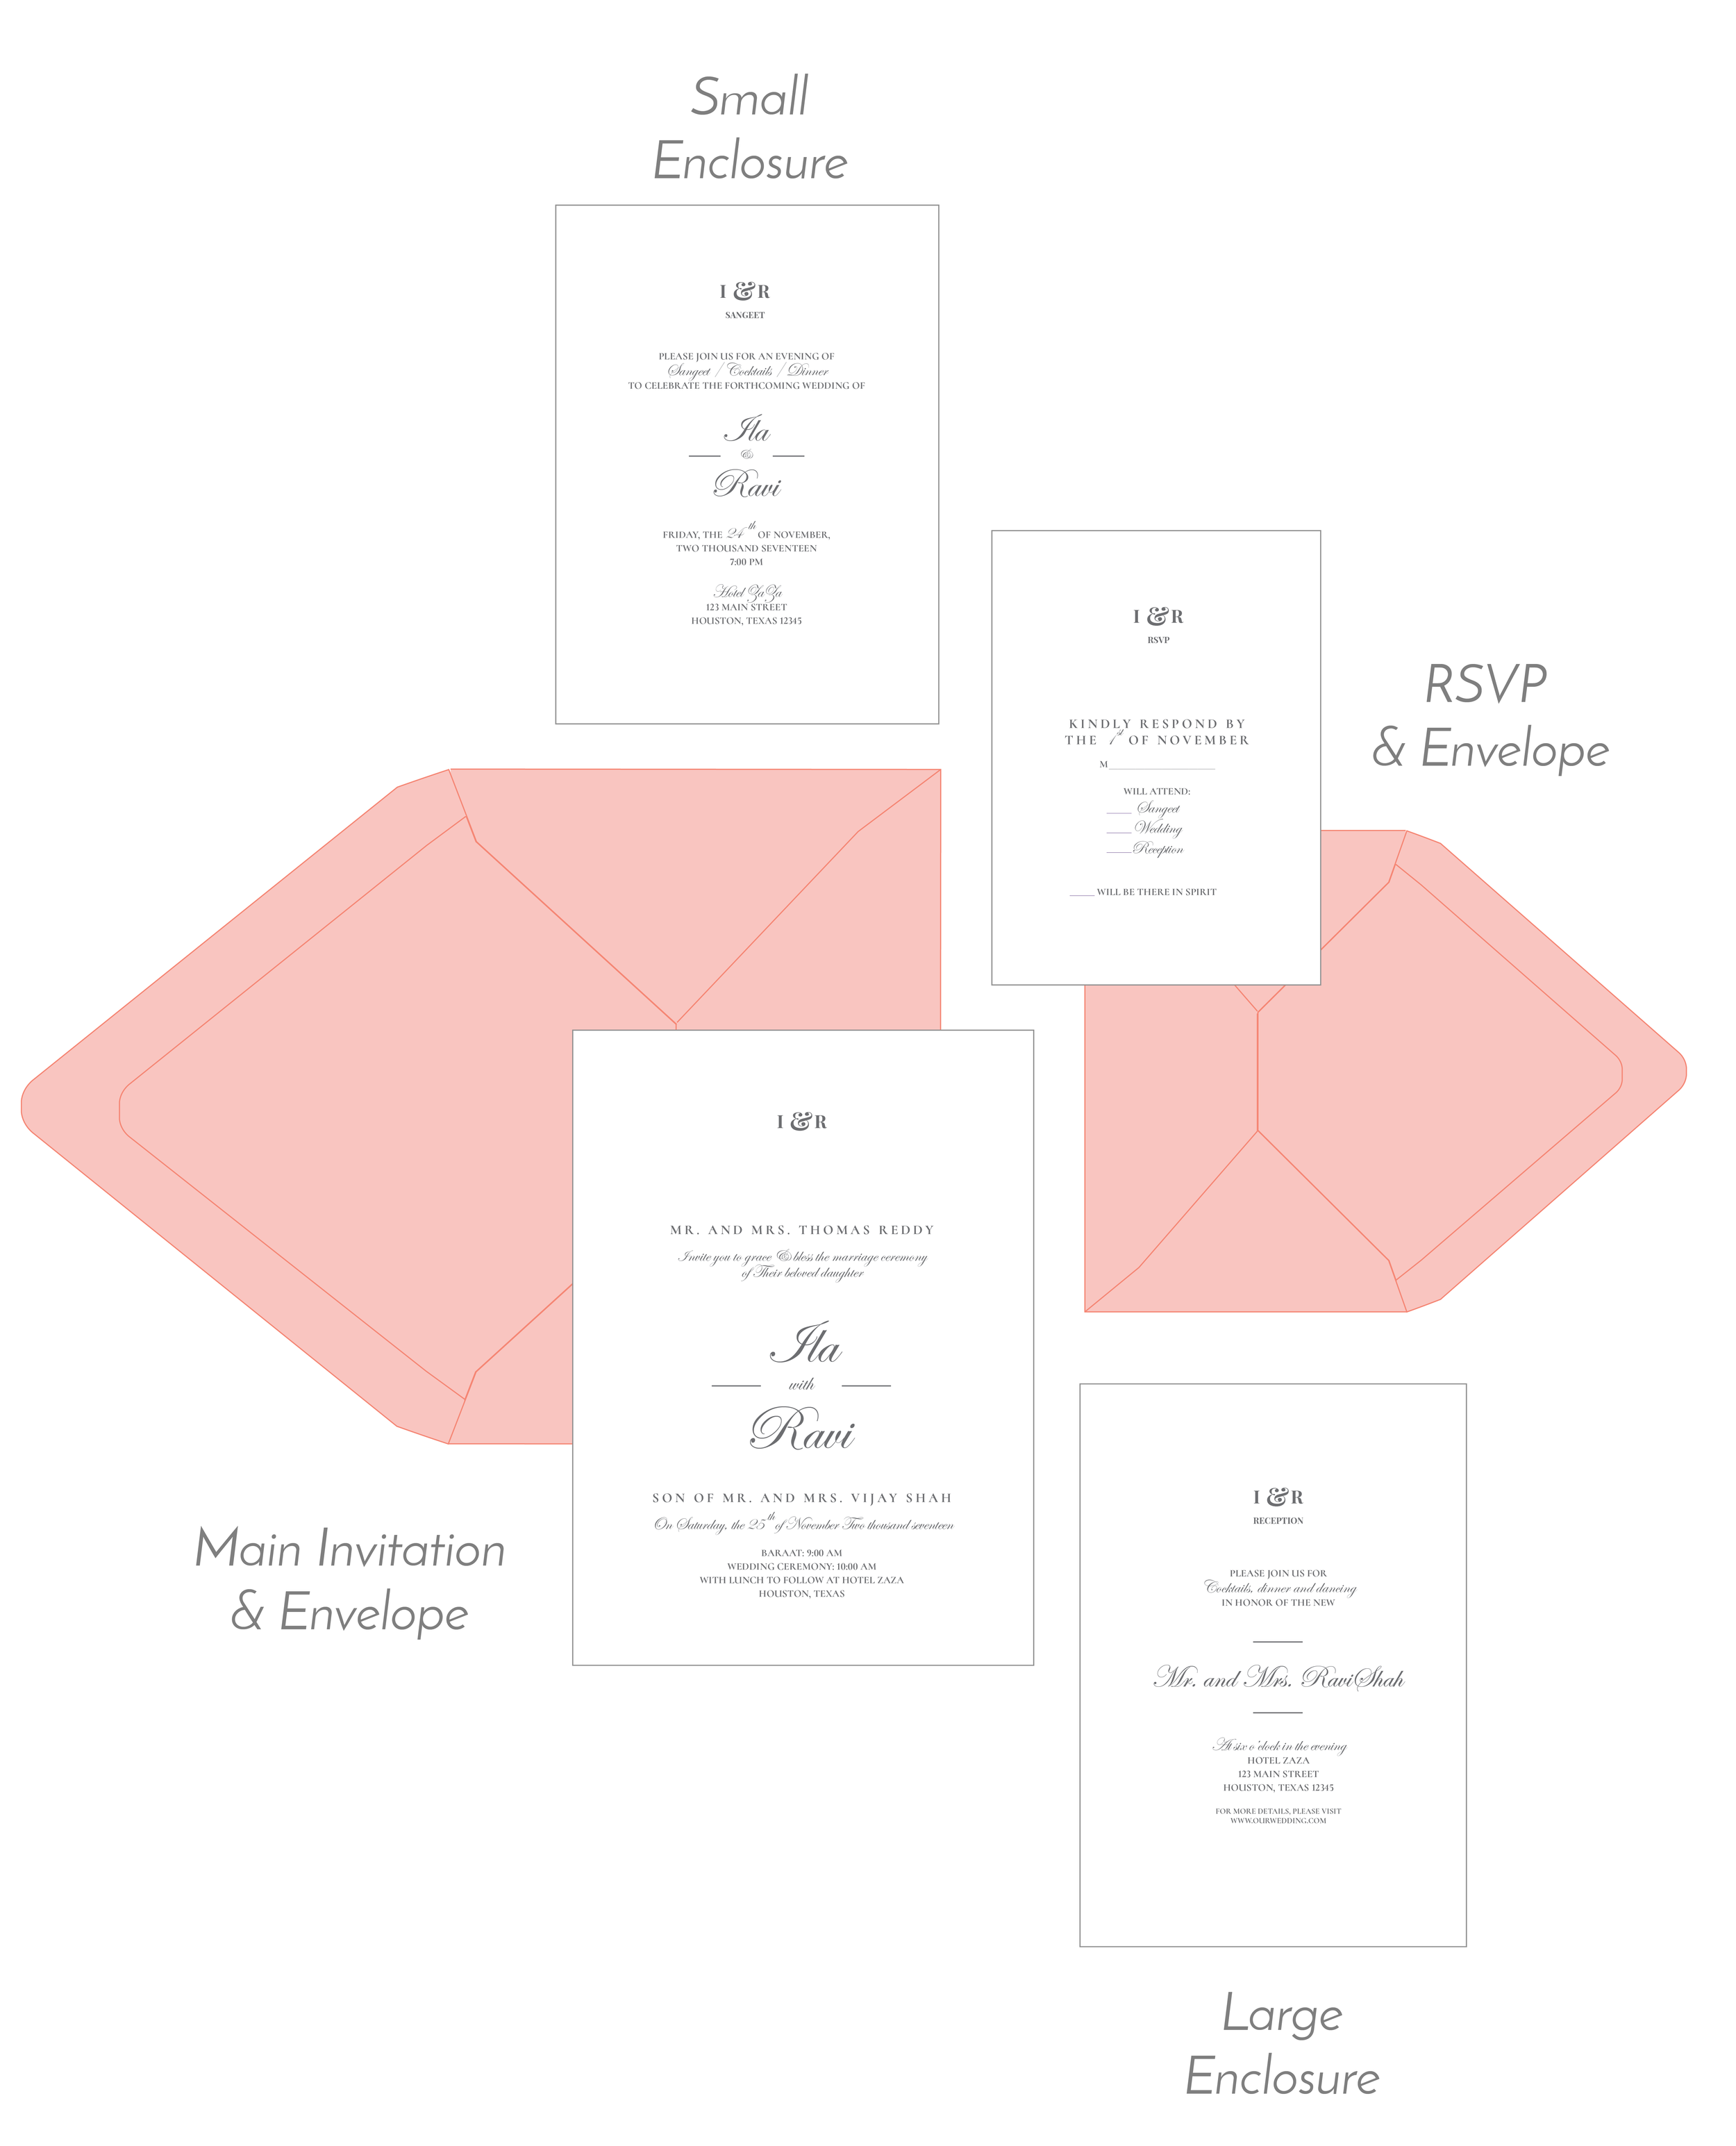 Invitation Components